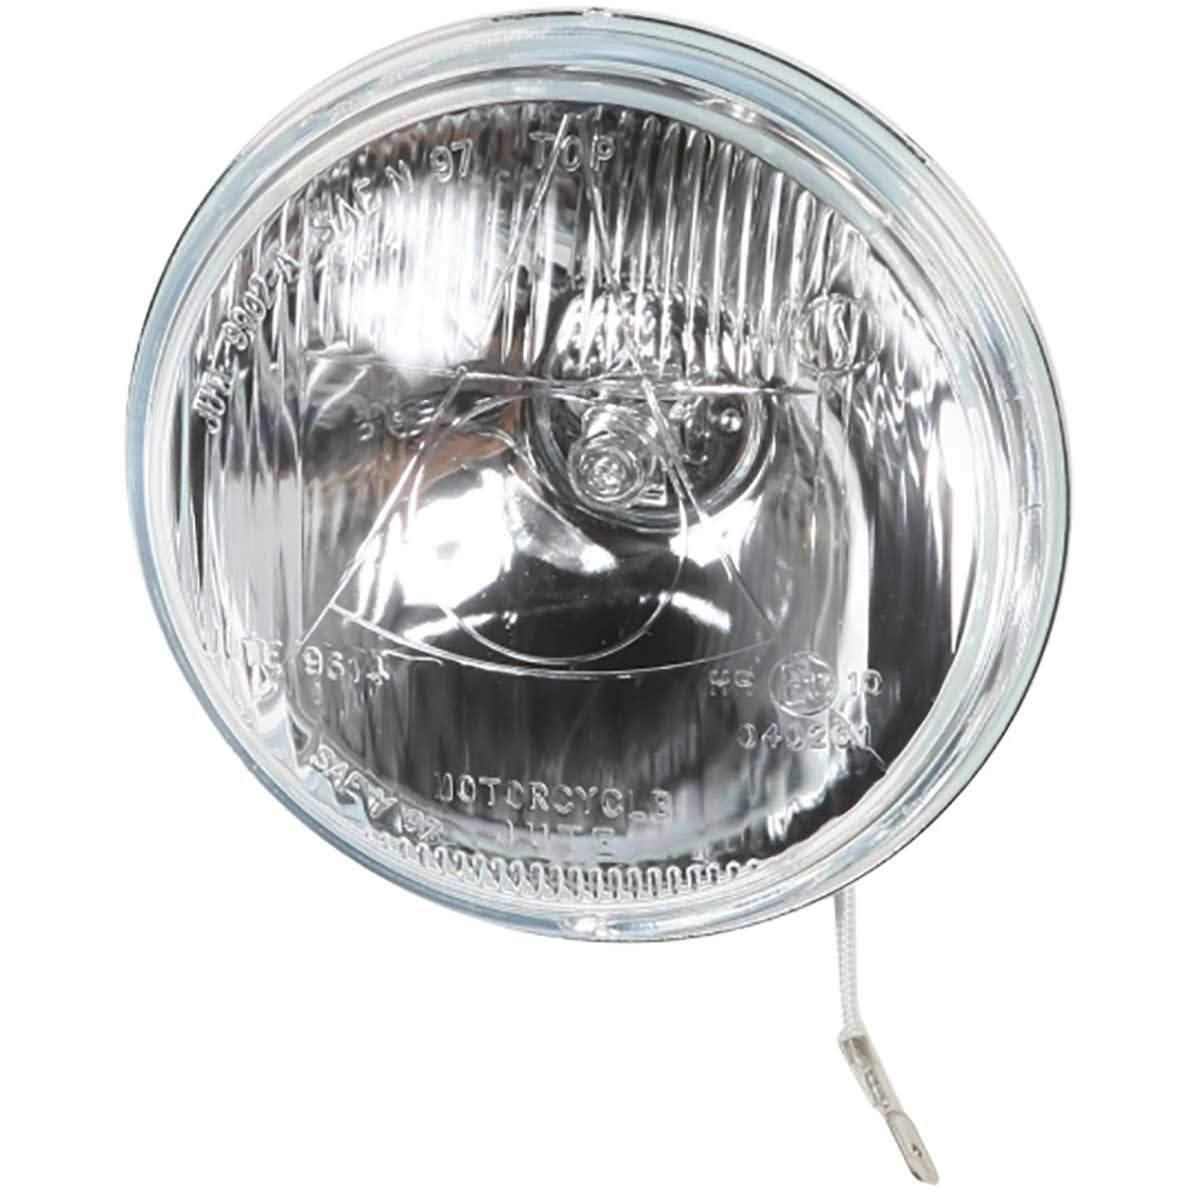 National Cycle 25w H3-Lamp for Spotlight Bars Motorcycle Accessories-90-901016-000